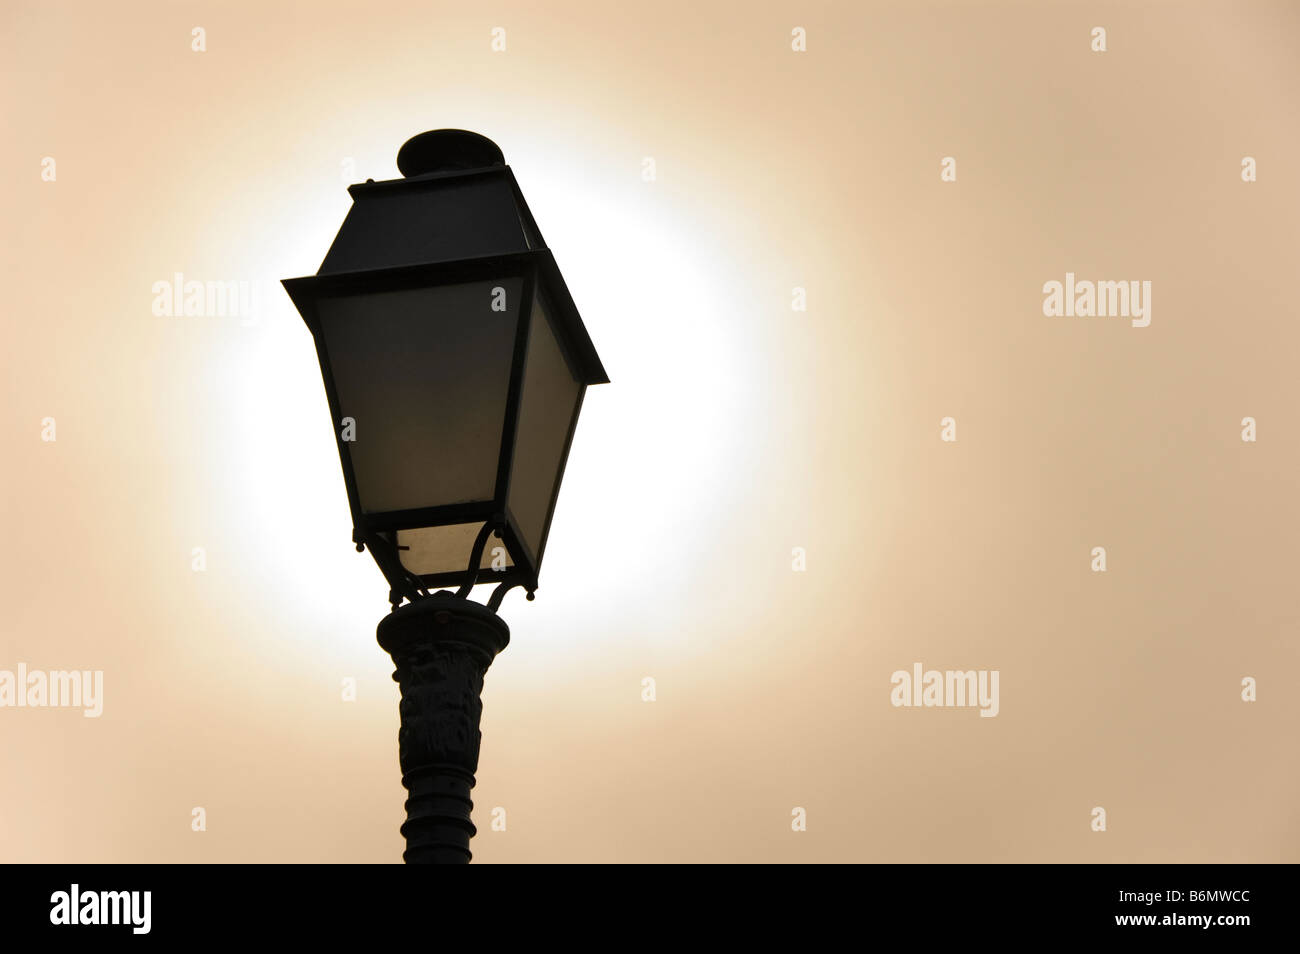 Sun light behind streetlight - Stock Image